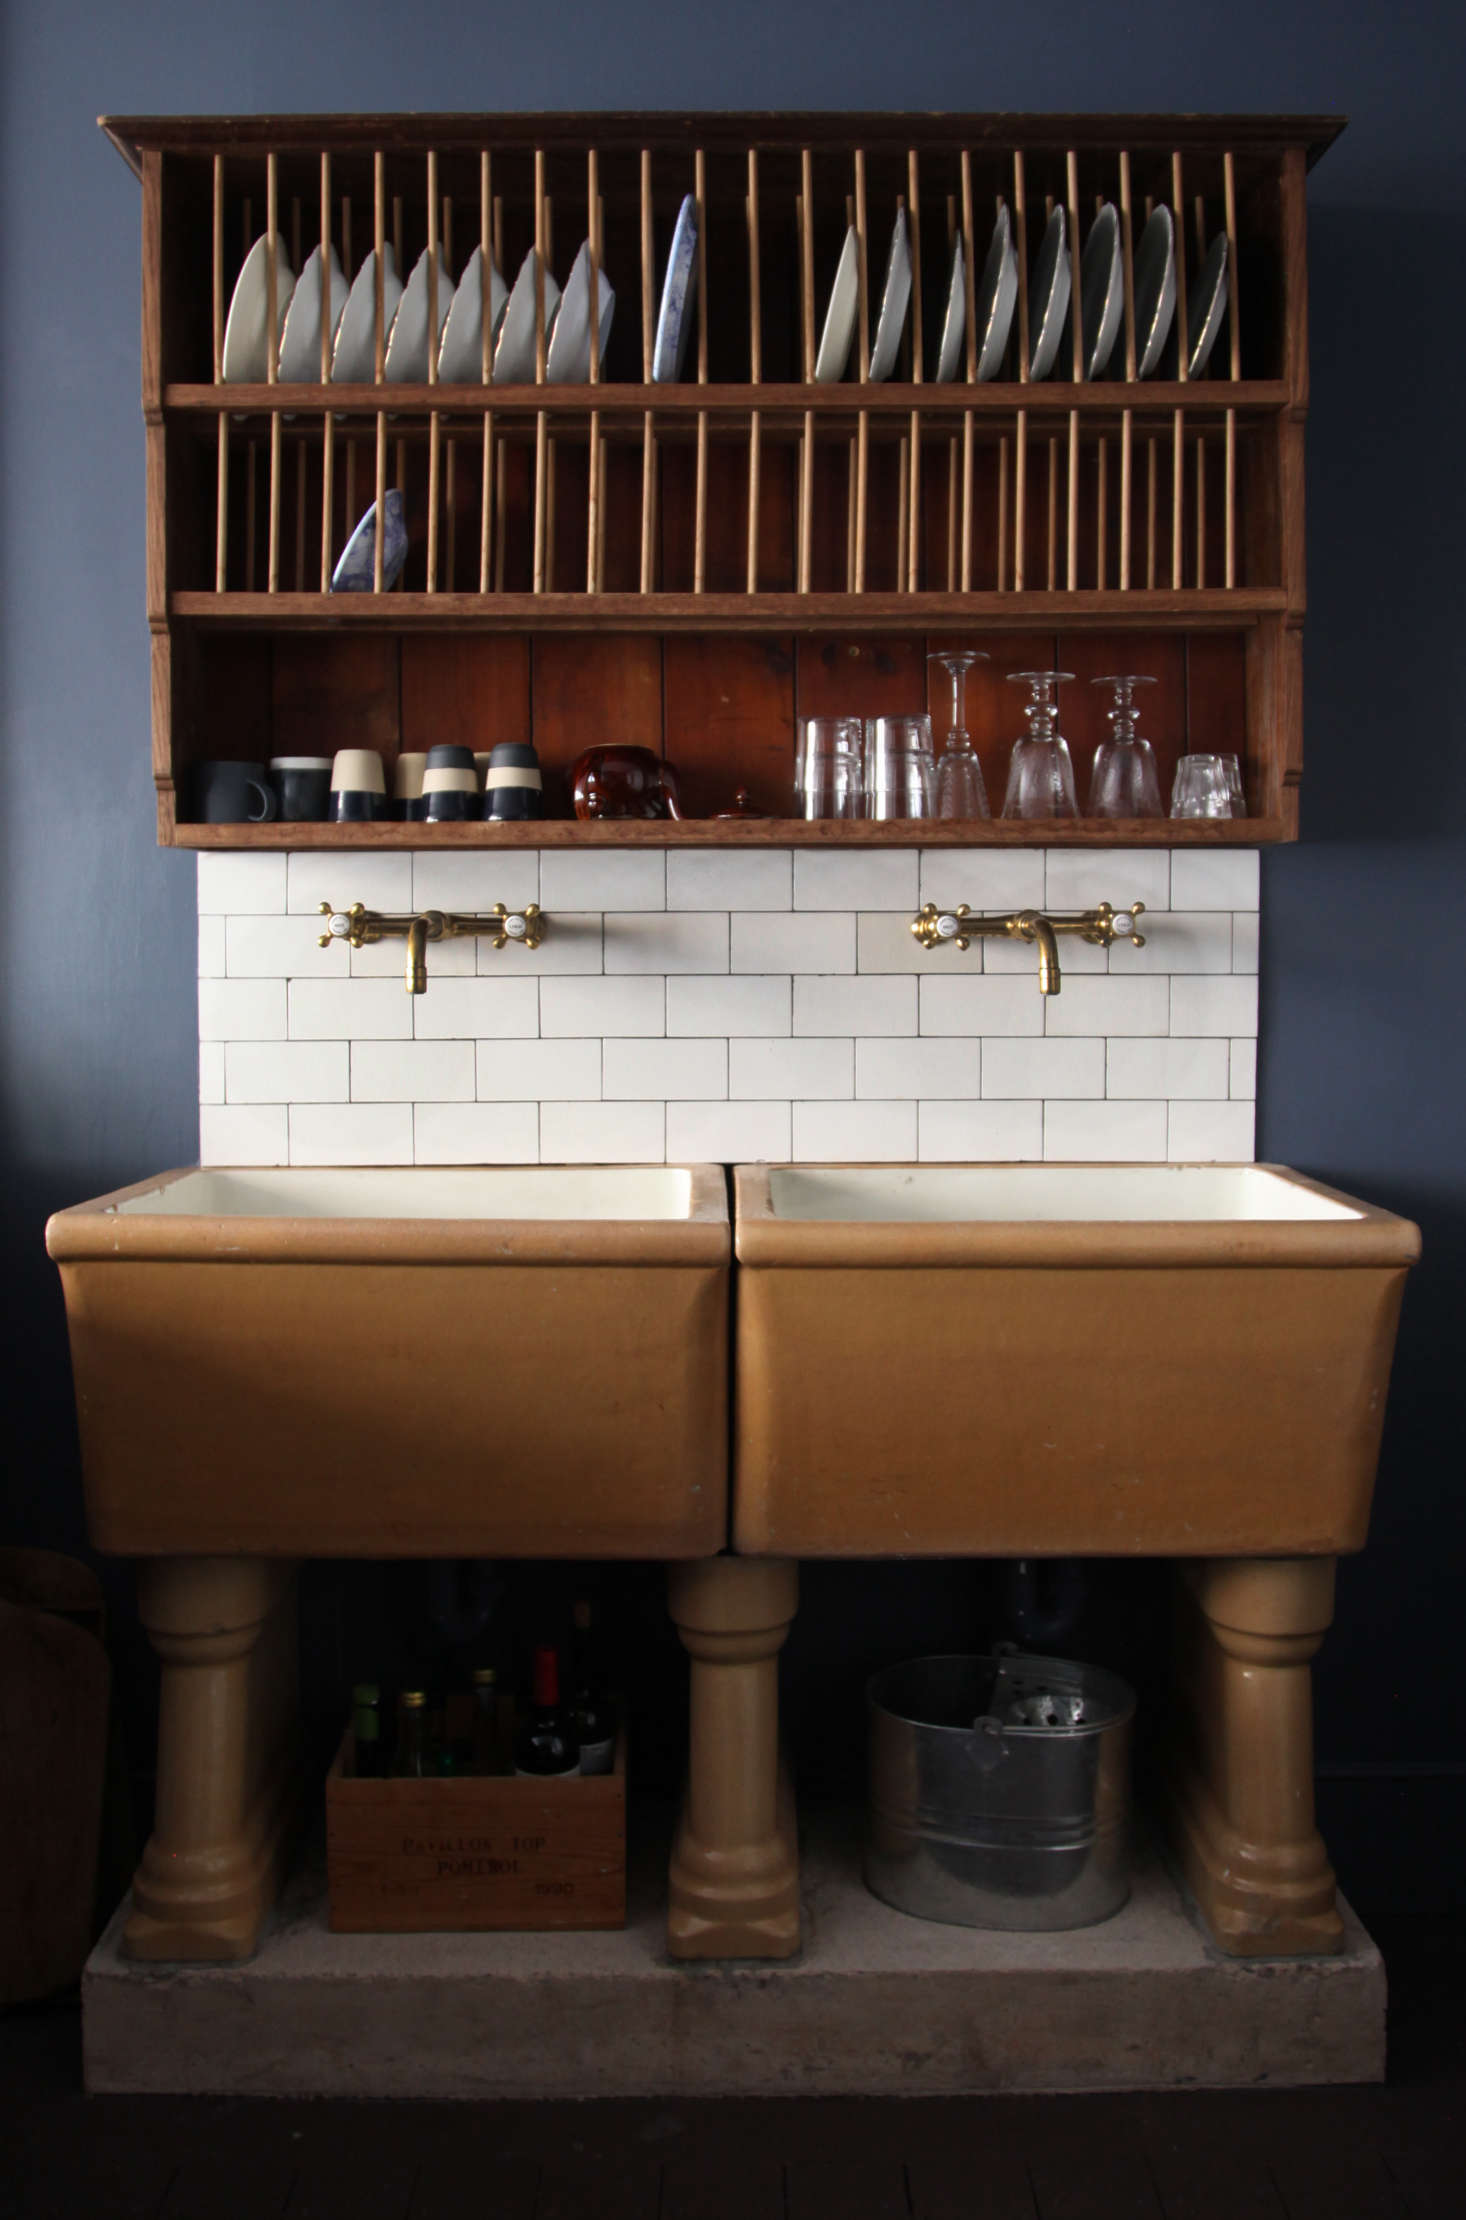 The sink has Barber Wilsons brass faucets—Berdoulat is launching a range of taps with the company in a few months—and a backsplash of reclaimed subway tiles bought on eBay. The plate-drying rack is a prototype for one that will be sold in the Berdoulat shop along with other &#8